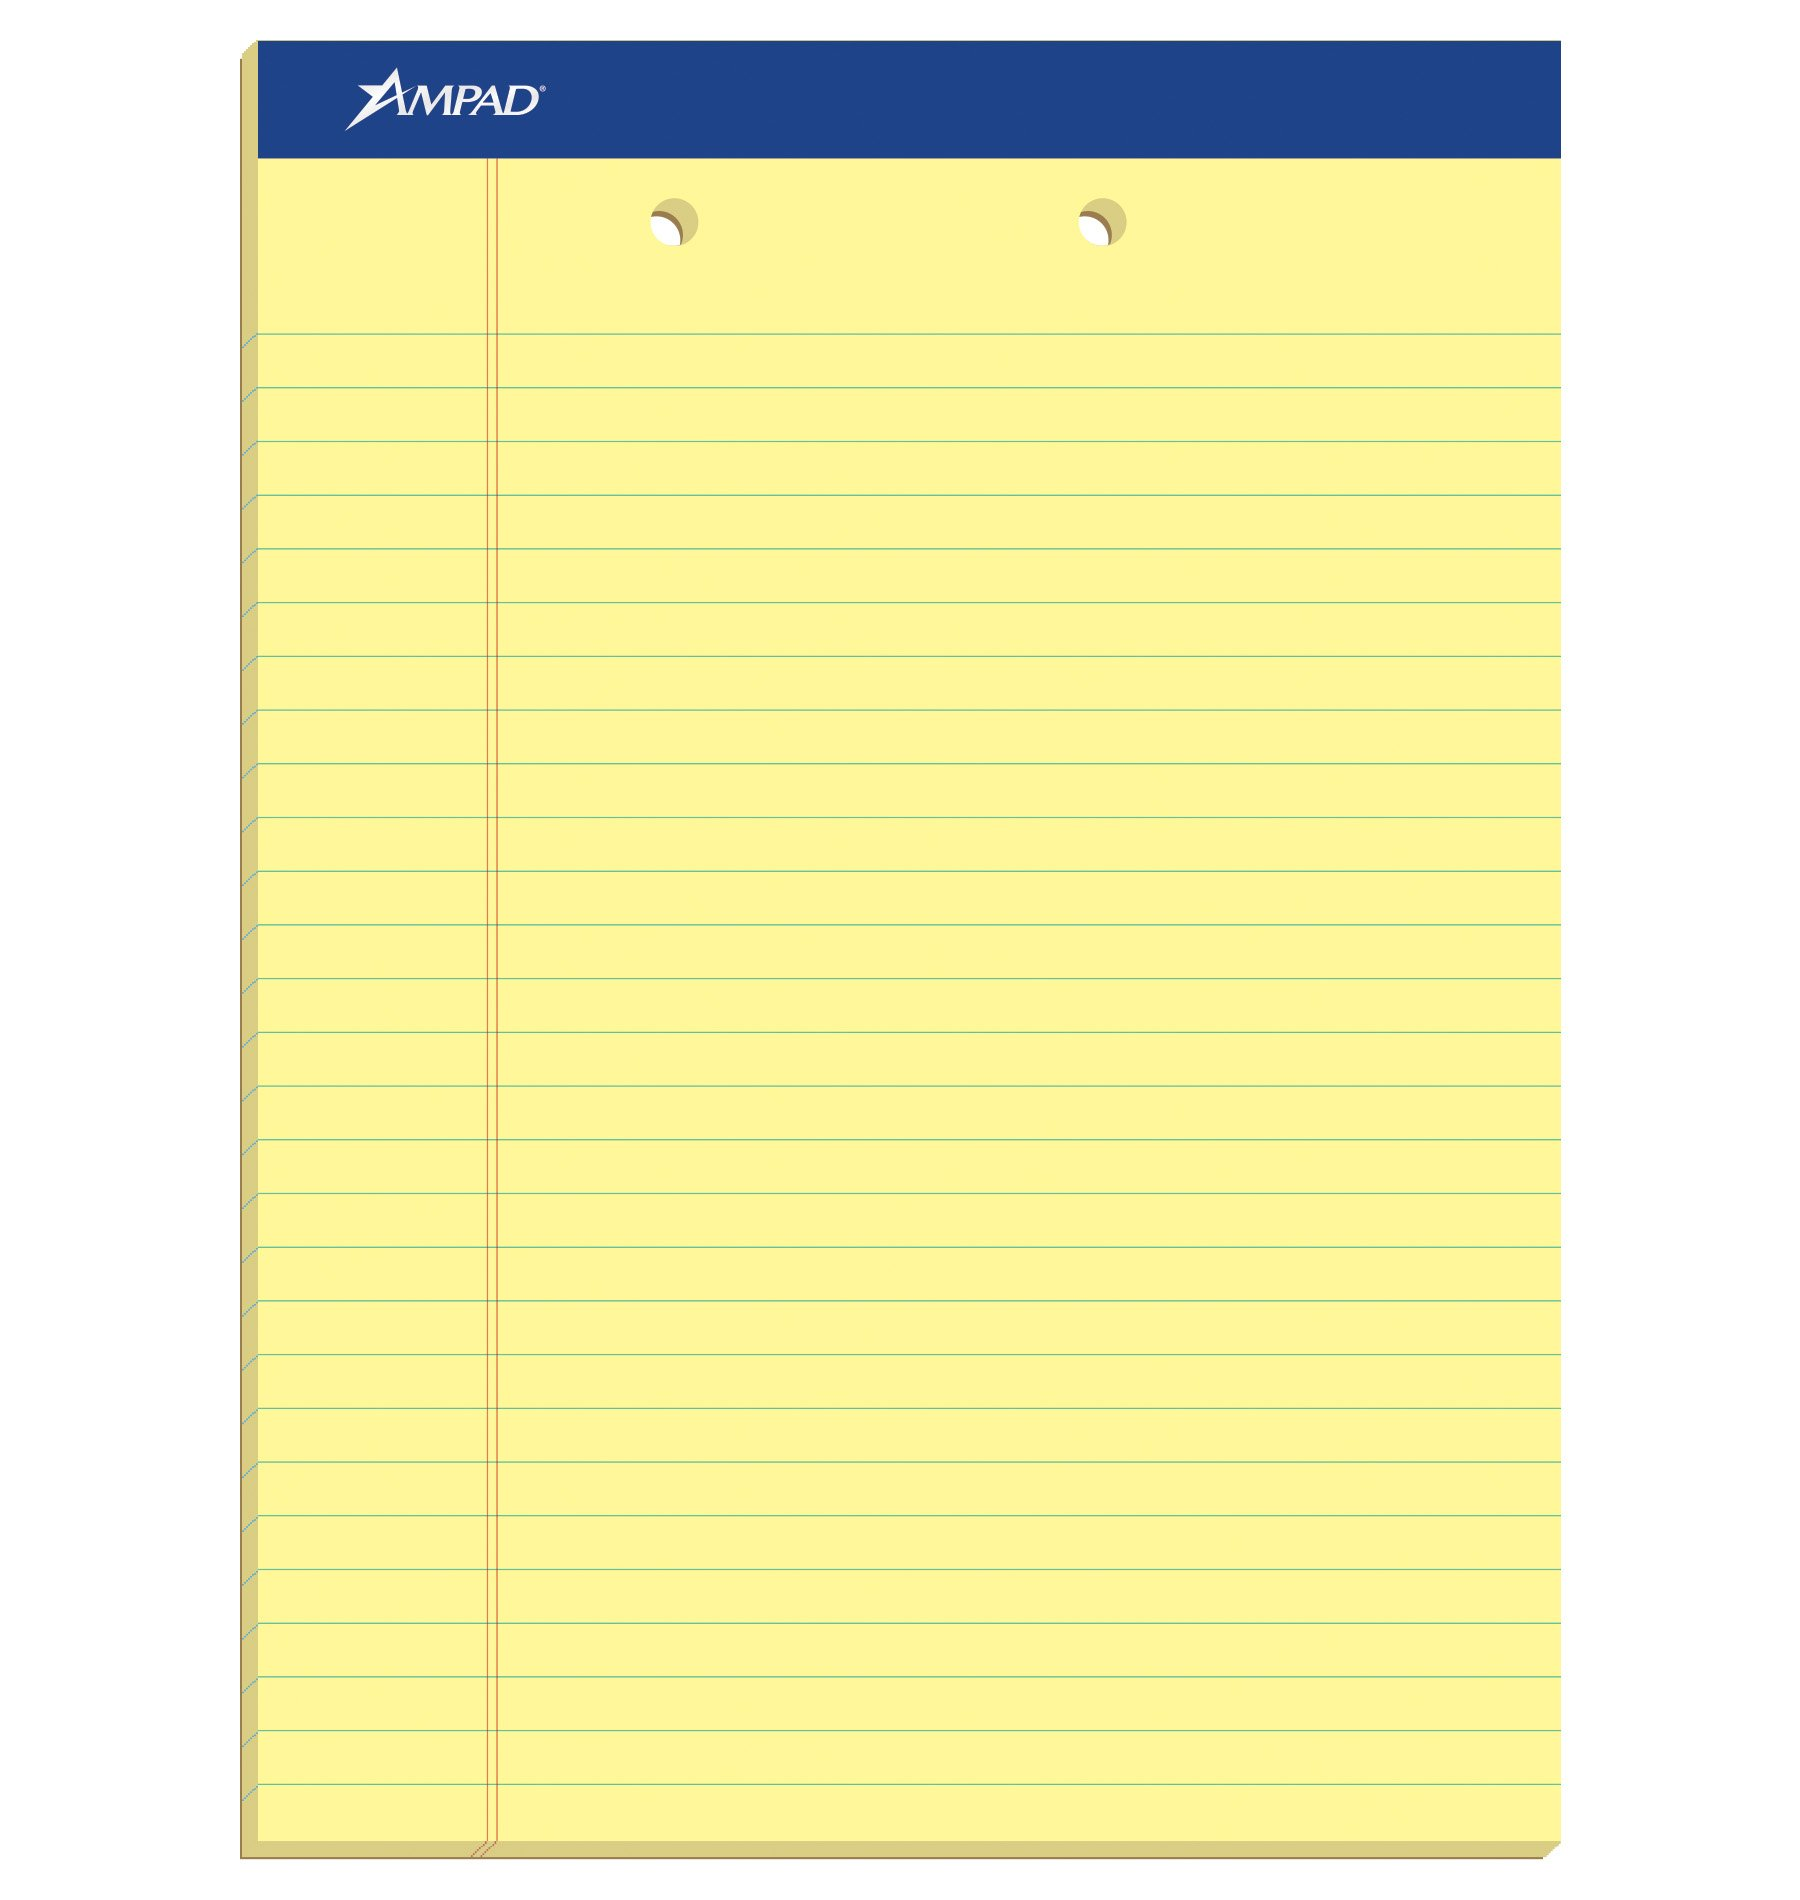 Ampad Evidence Perforated Pad,Size  8-1/2 x 11-3/4, Canary Yellow Paper , Legal Ruling , 50 Sheets per Pad, 2 Hole Punched, Pack of 12 (20-224)